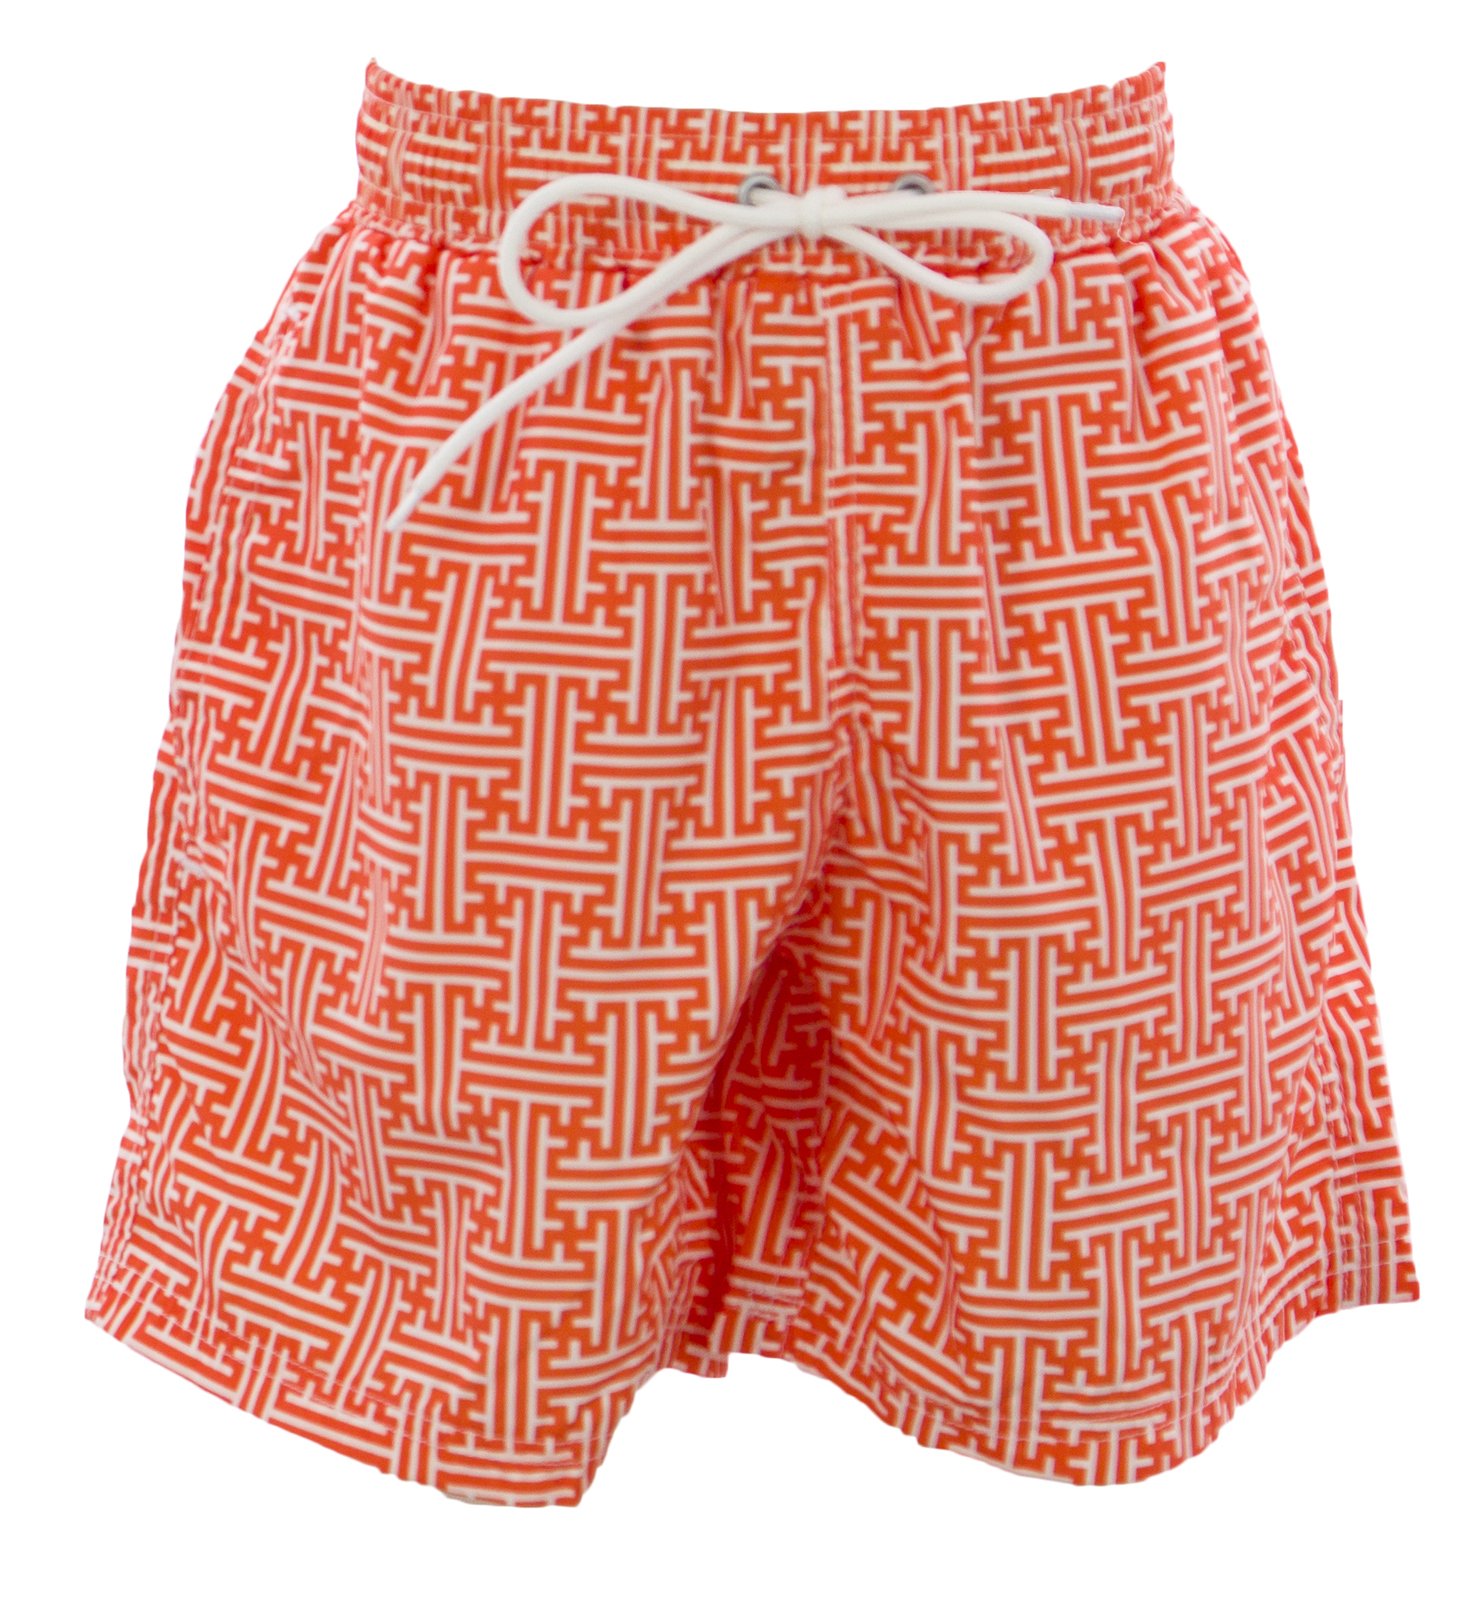 NAILA Toddler Boy's Line Printed Swim Trunks Sz 2 Years Orange